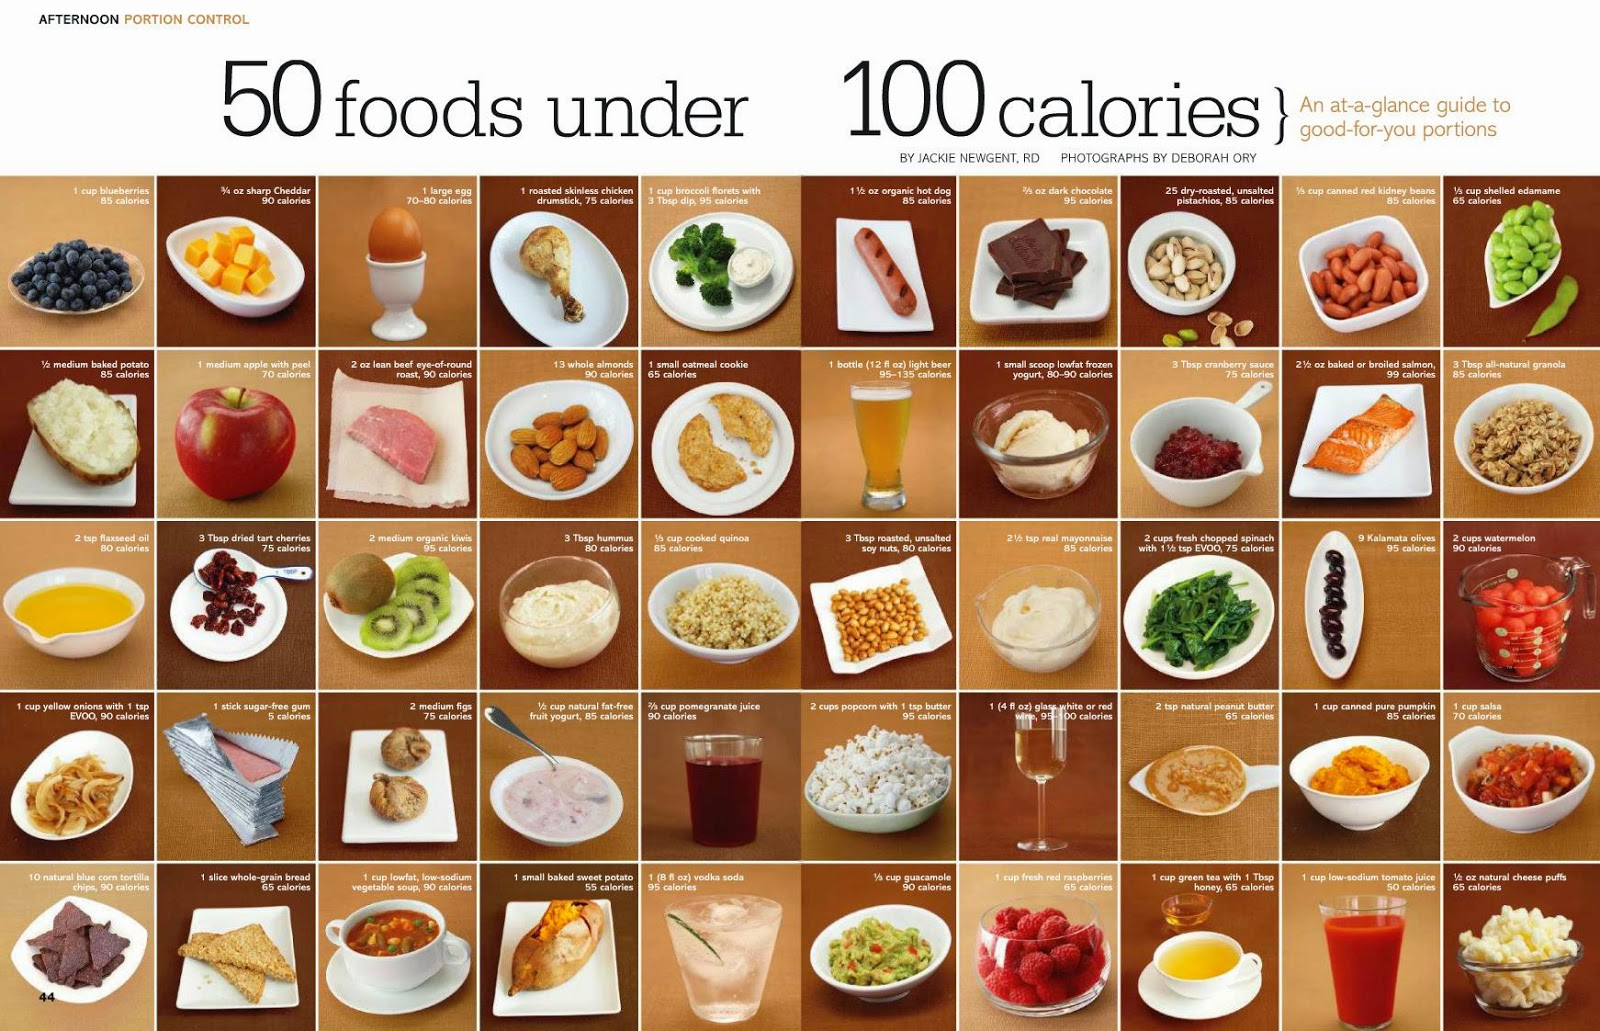 Top 10 Healthy Snacks Under 100 Calories For Weight Loss